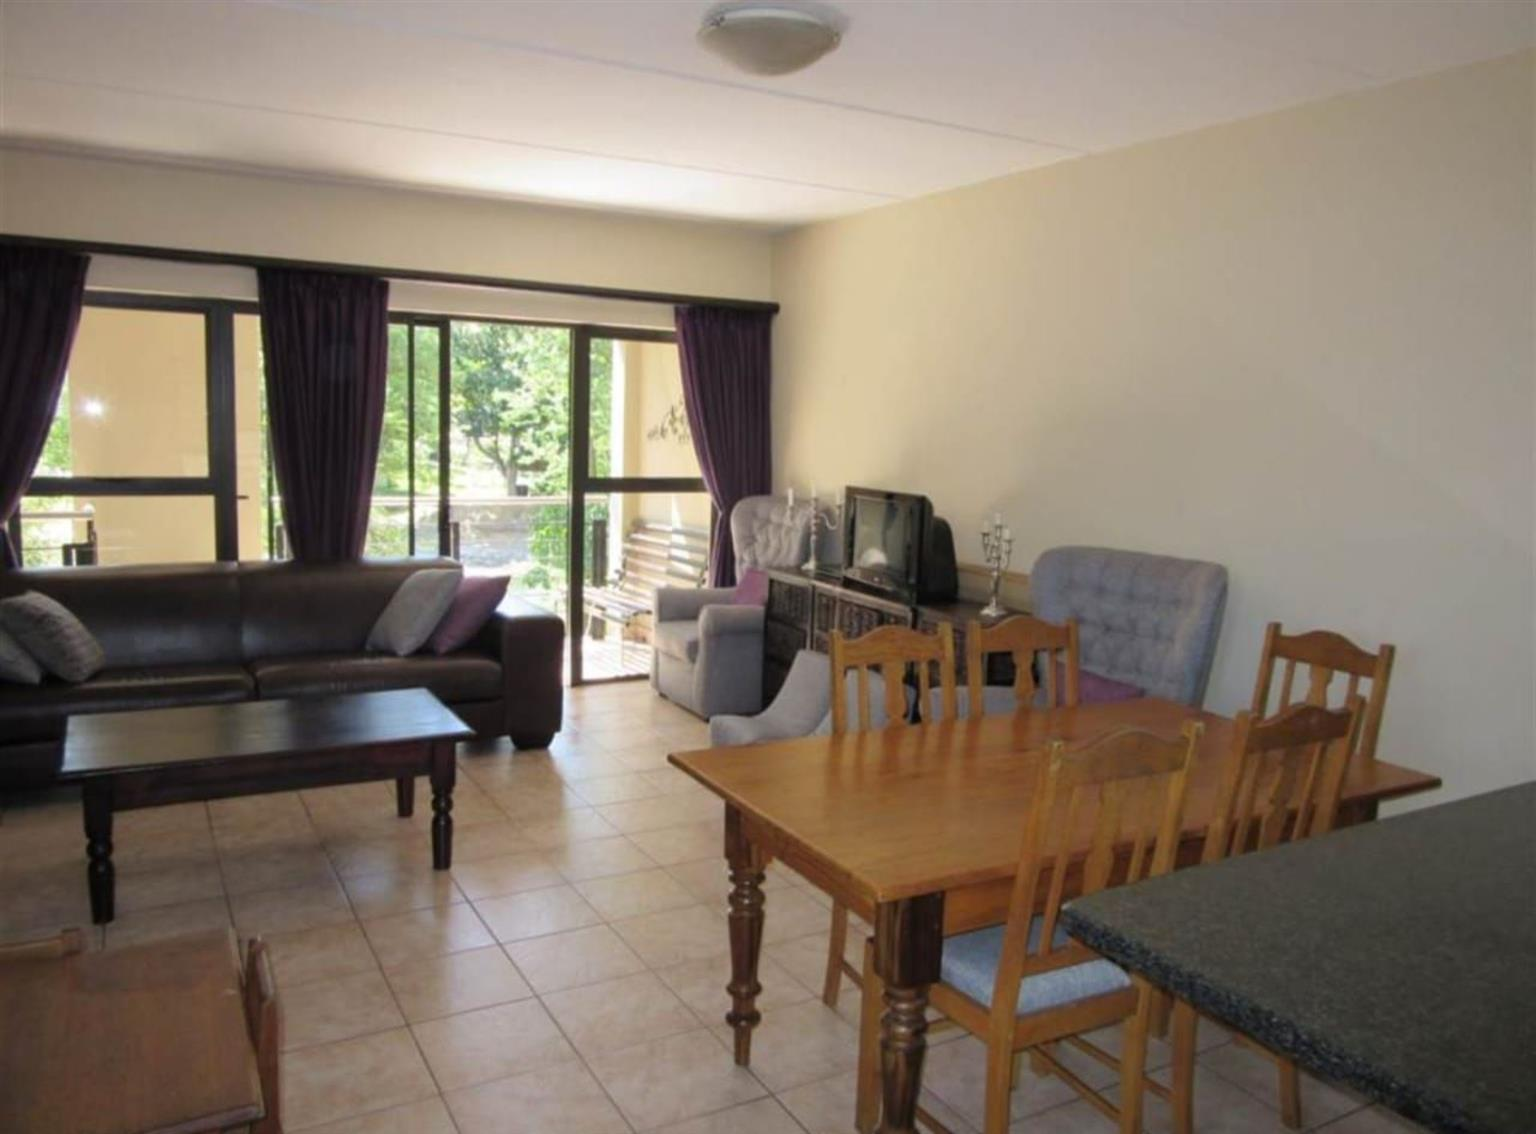 Townhouse Rental Monthly in MAGALIESSIG